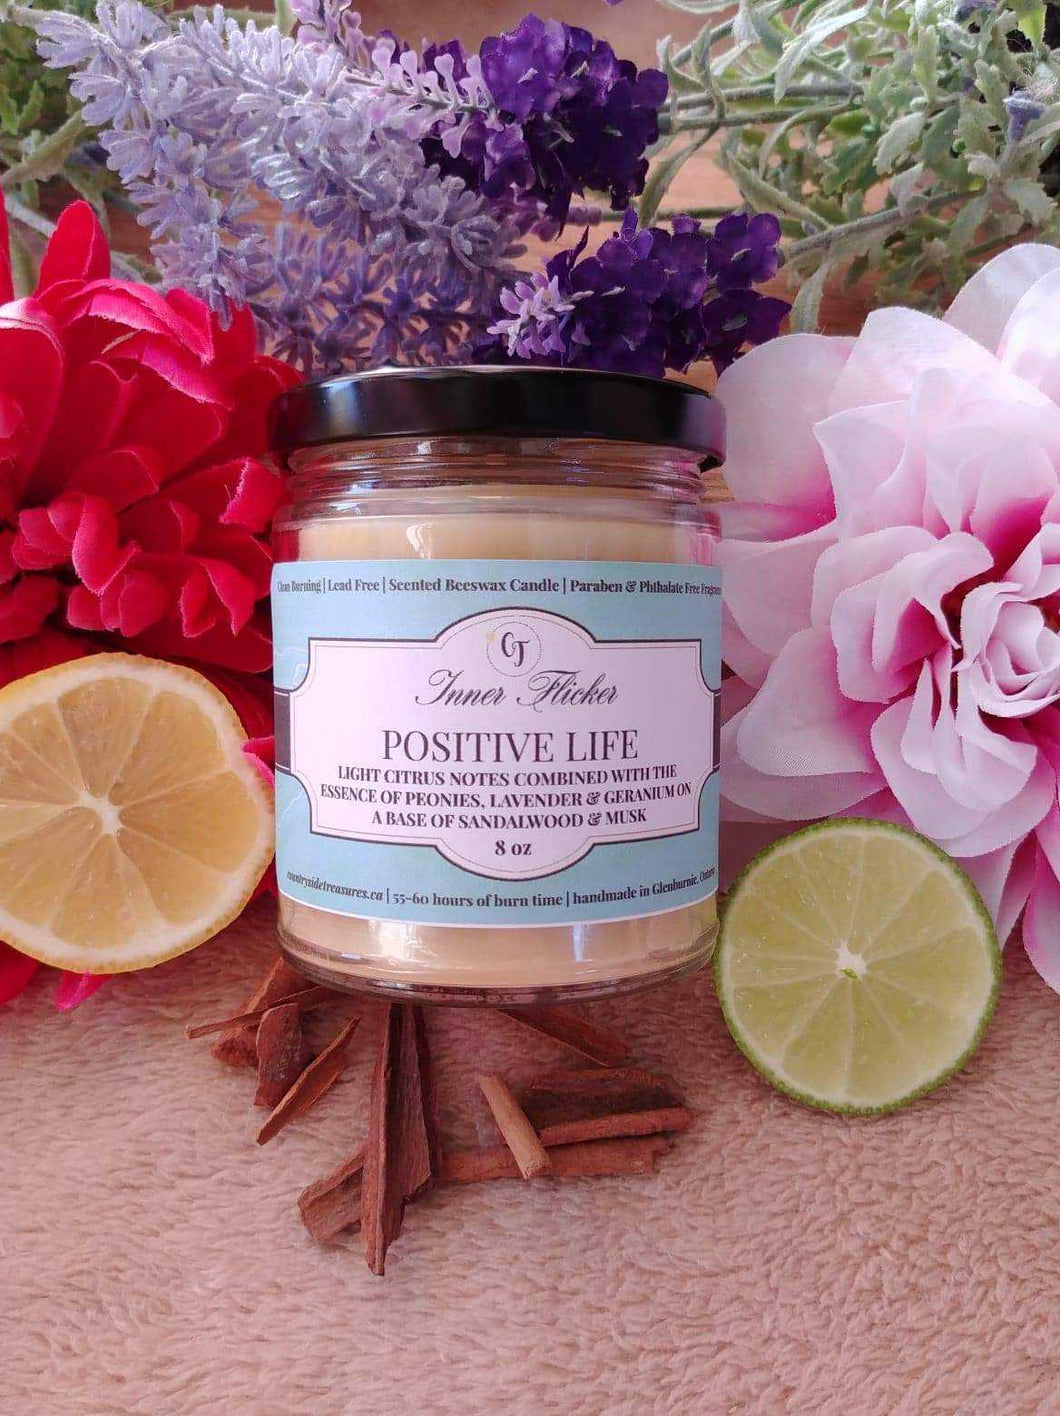 POSITIVE LIFE (White Tea + Ginger) beeswax candle - Countryside Treasures